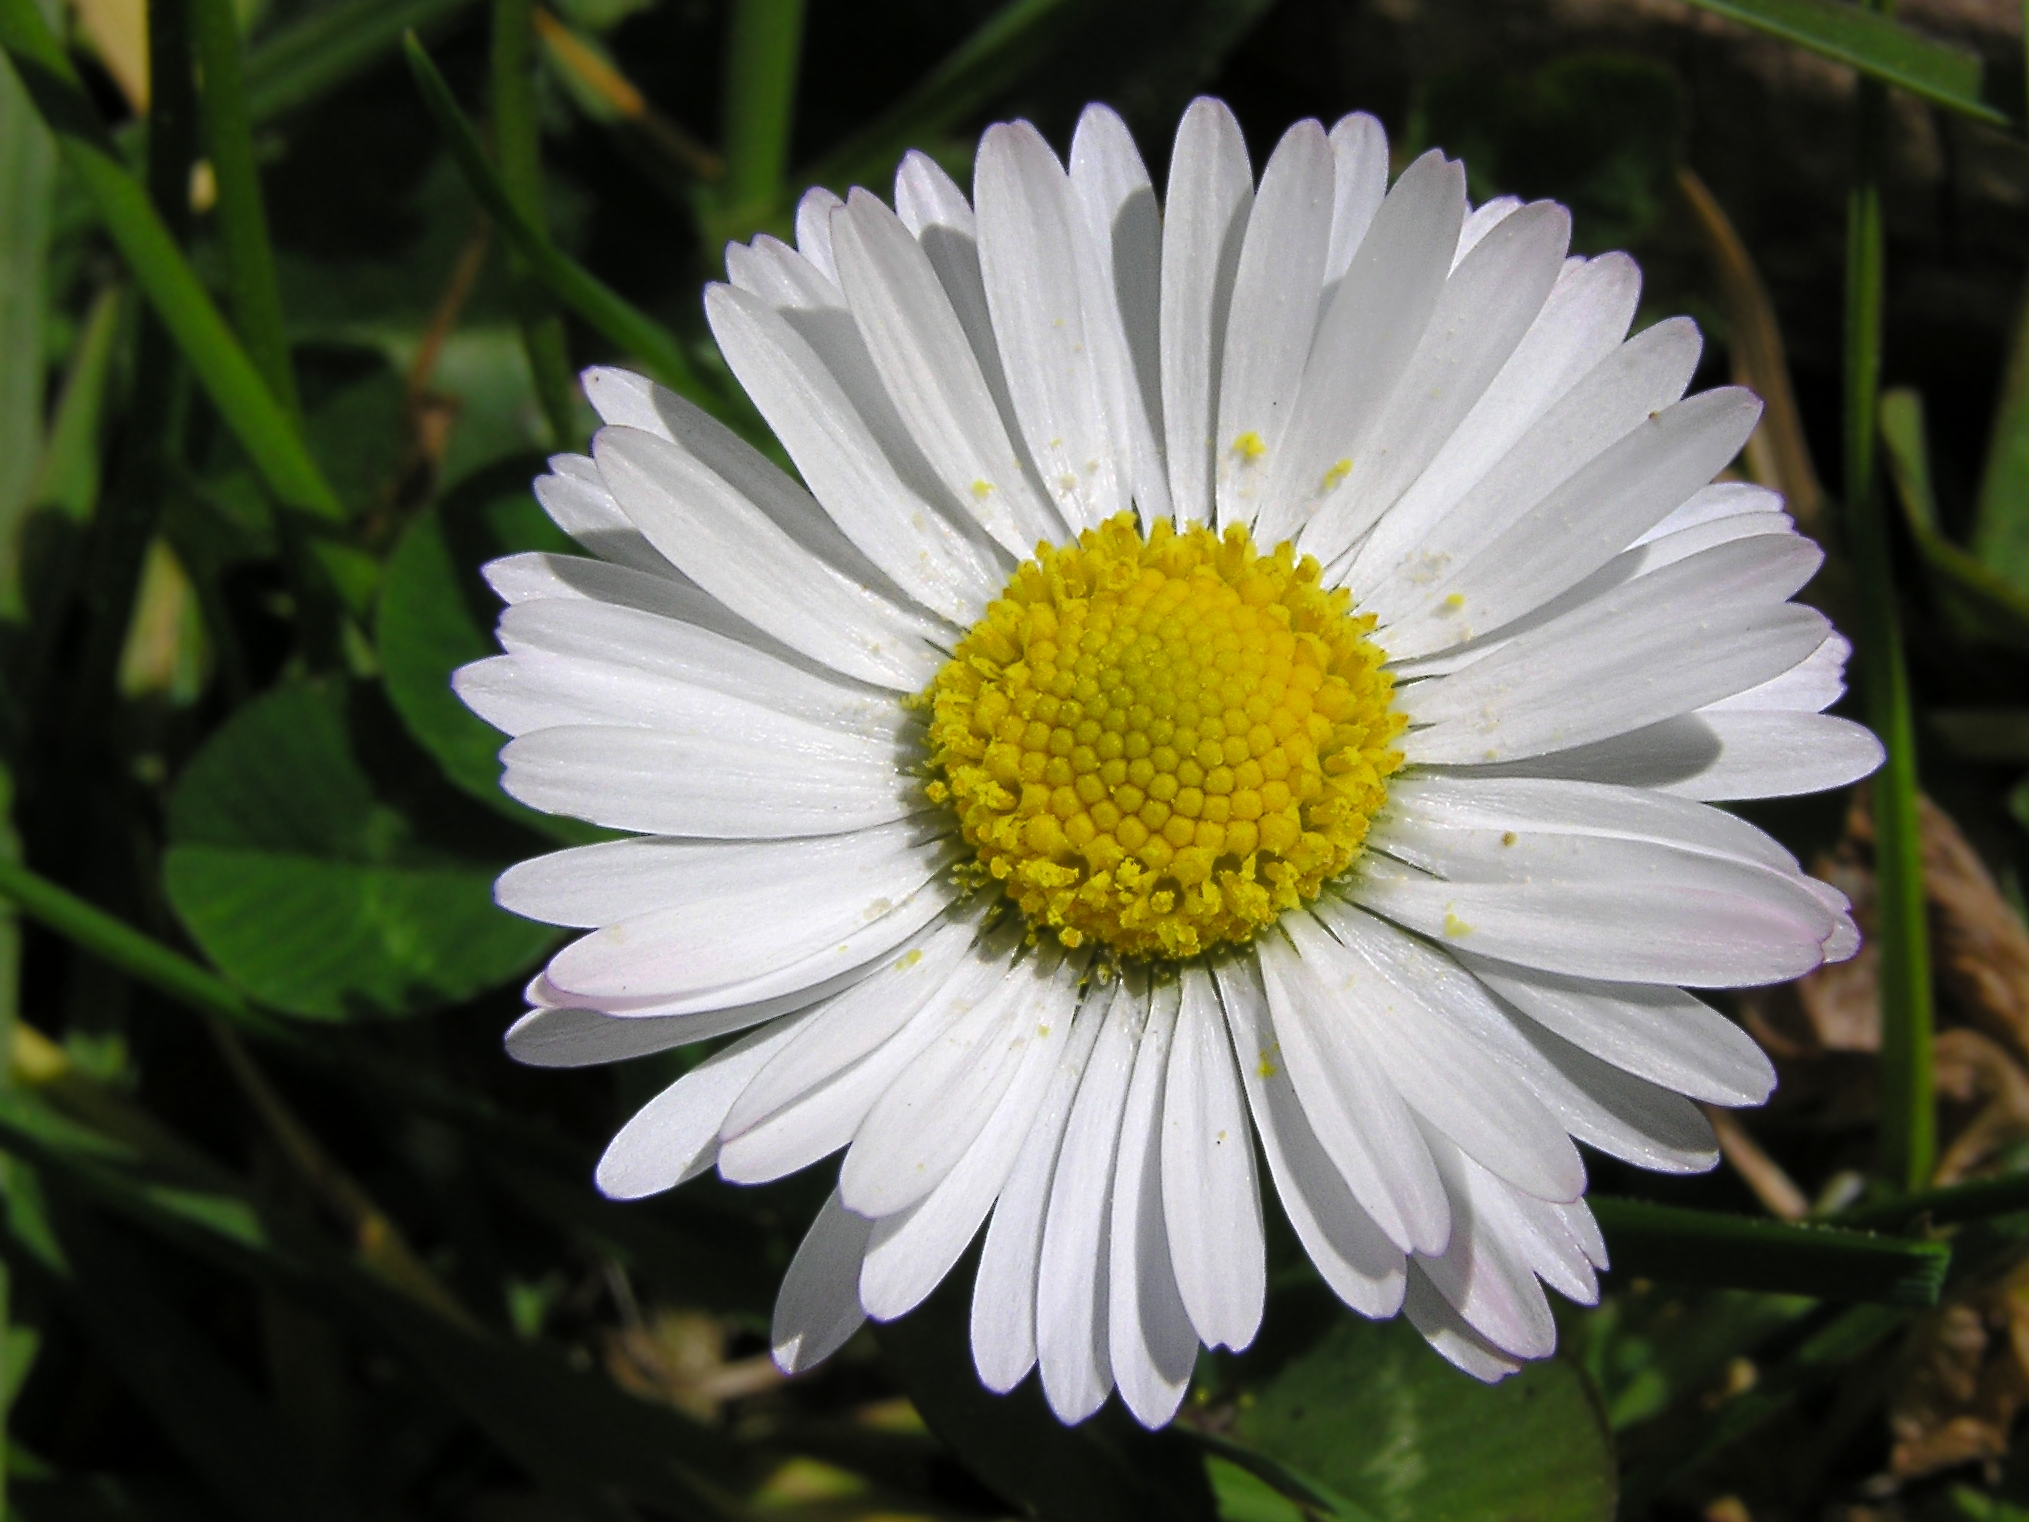 File:Lawn daisy.jpg - Wikimedia Commons